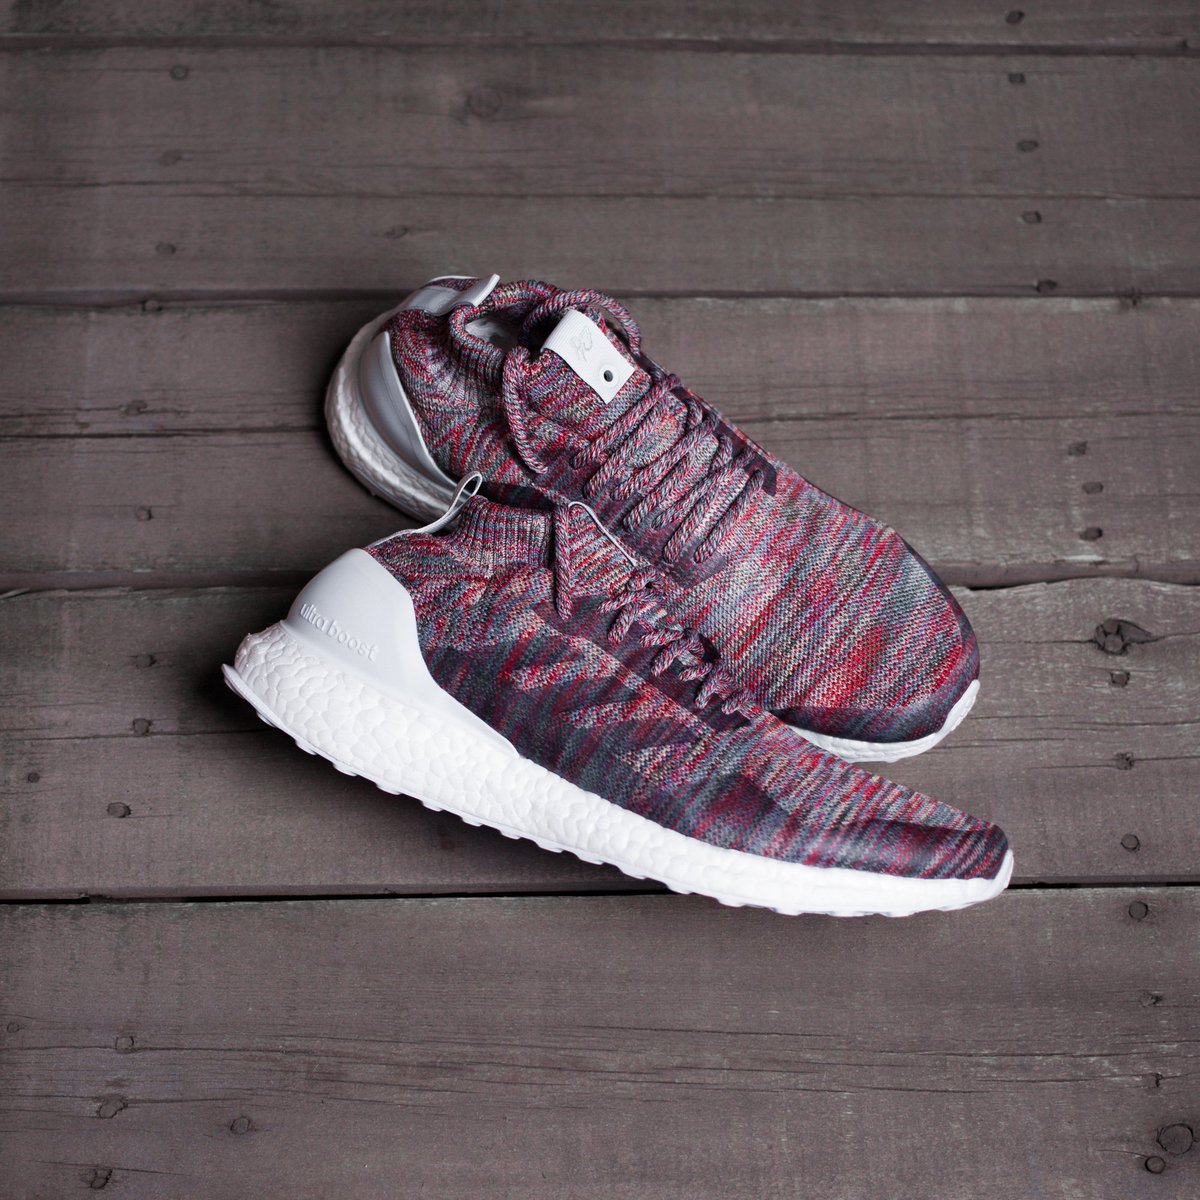 edf4fd0c2b530 Adidas Consortium x Kith Men s Ultra Boost Mid releases Sat. in sz 8-13 for   220. Sign up for our online raffle at ...